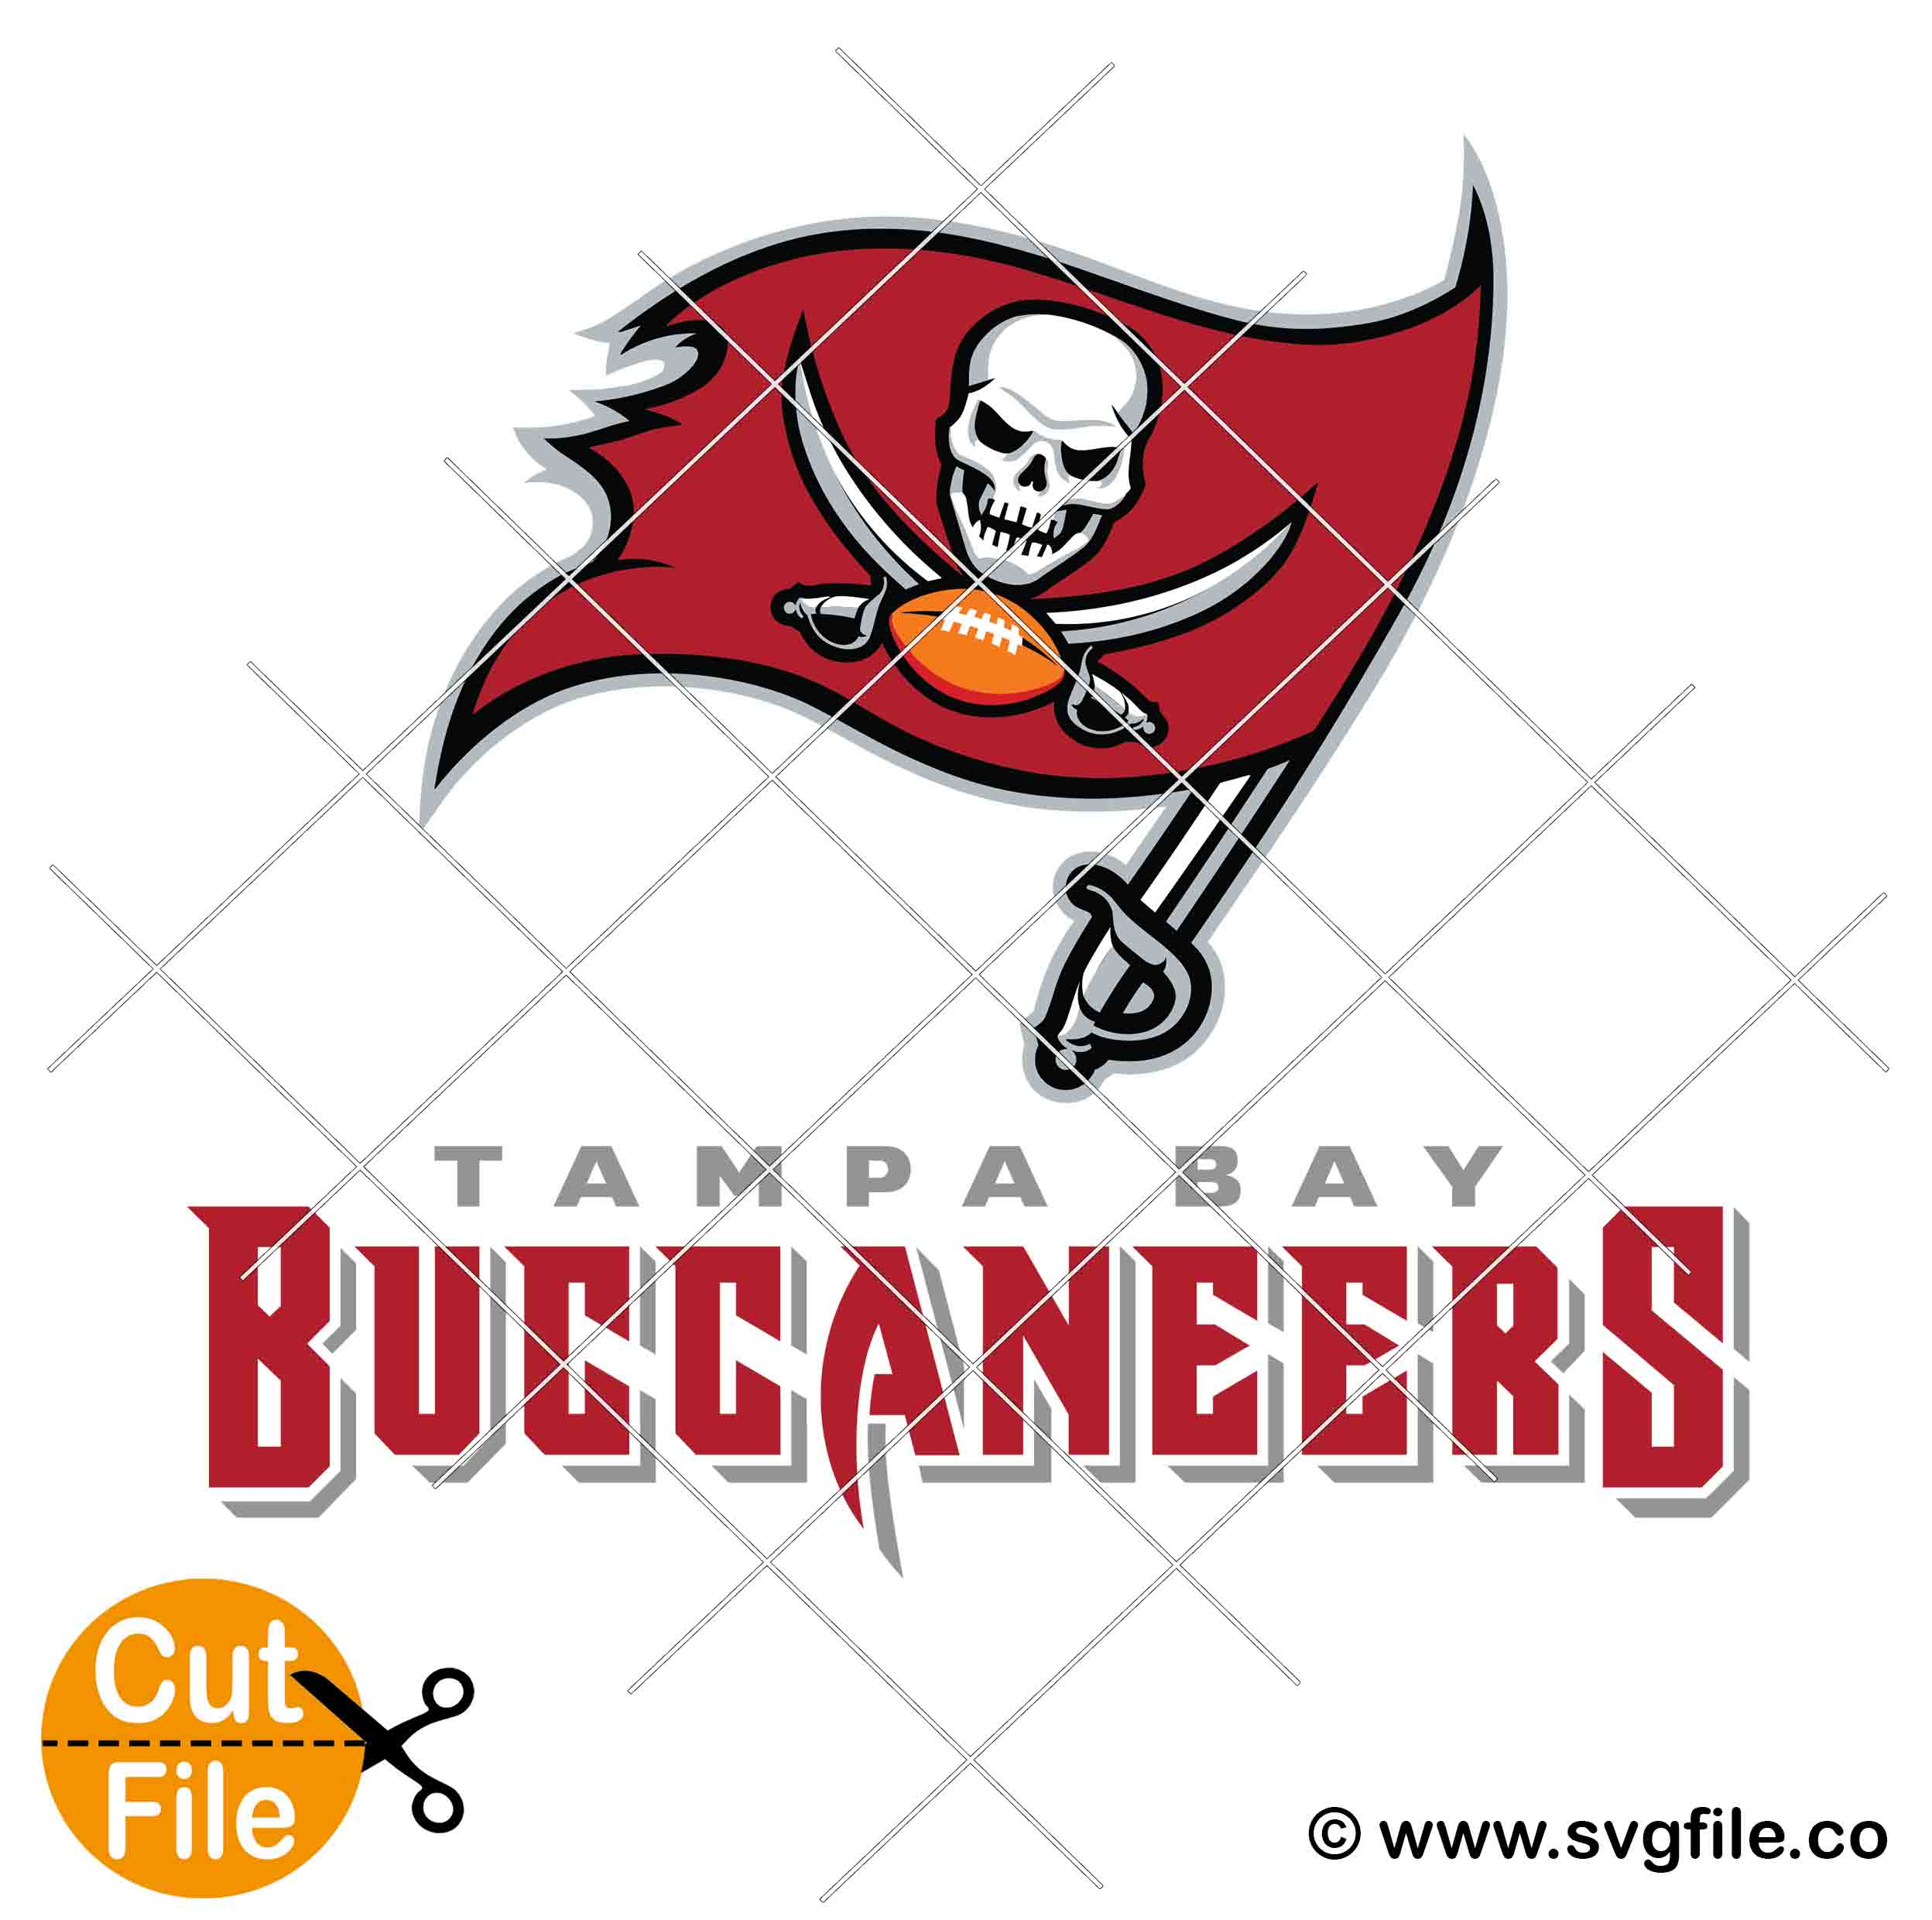 tampa bay buccaneers svg layered logo svg file svgfile co 0 99 cent svg files life time access tampa bay buccaneers svg layered logo